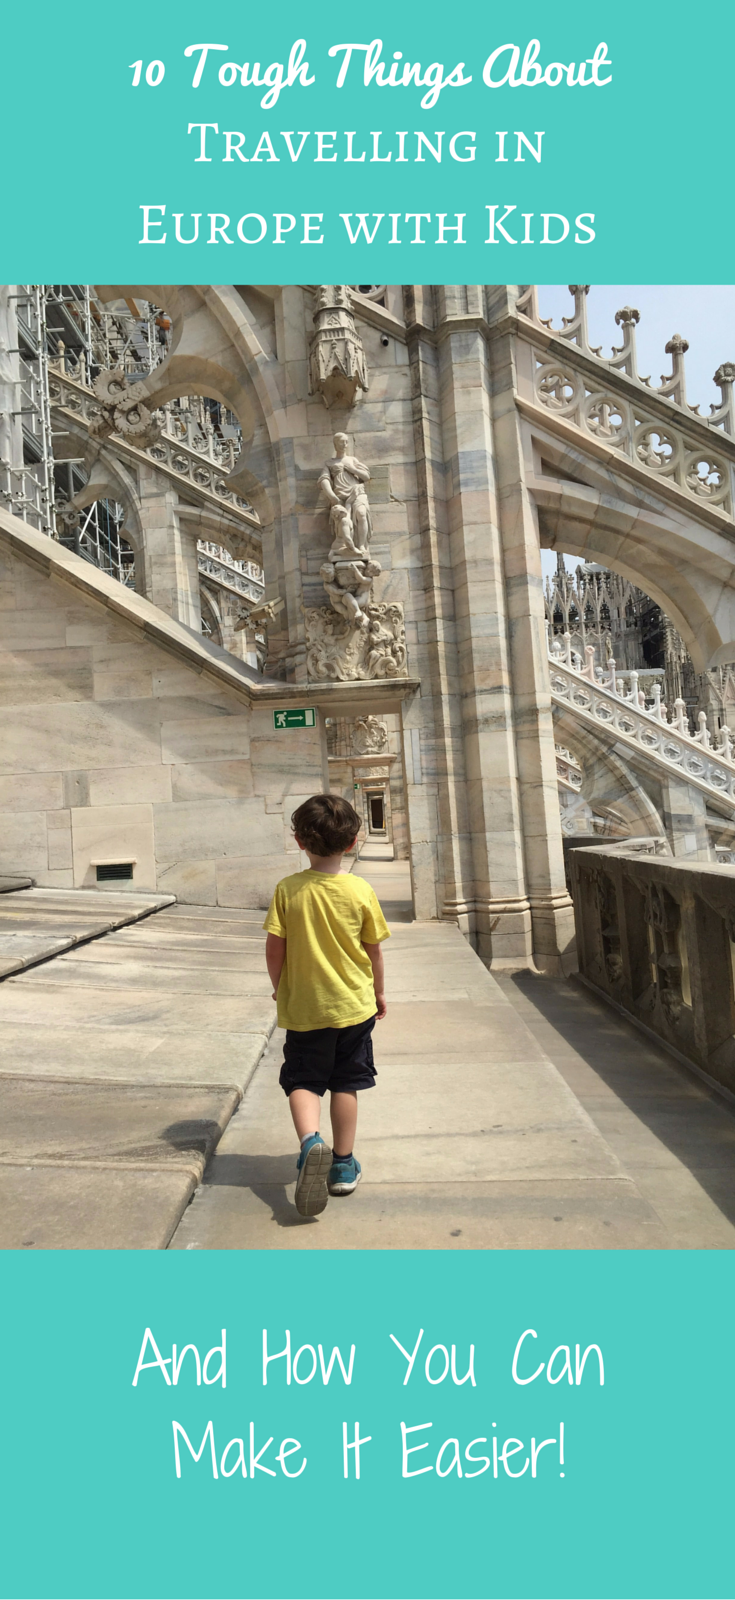 Travelling in Europe with Kids